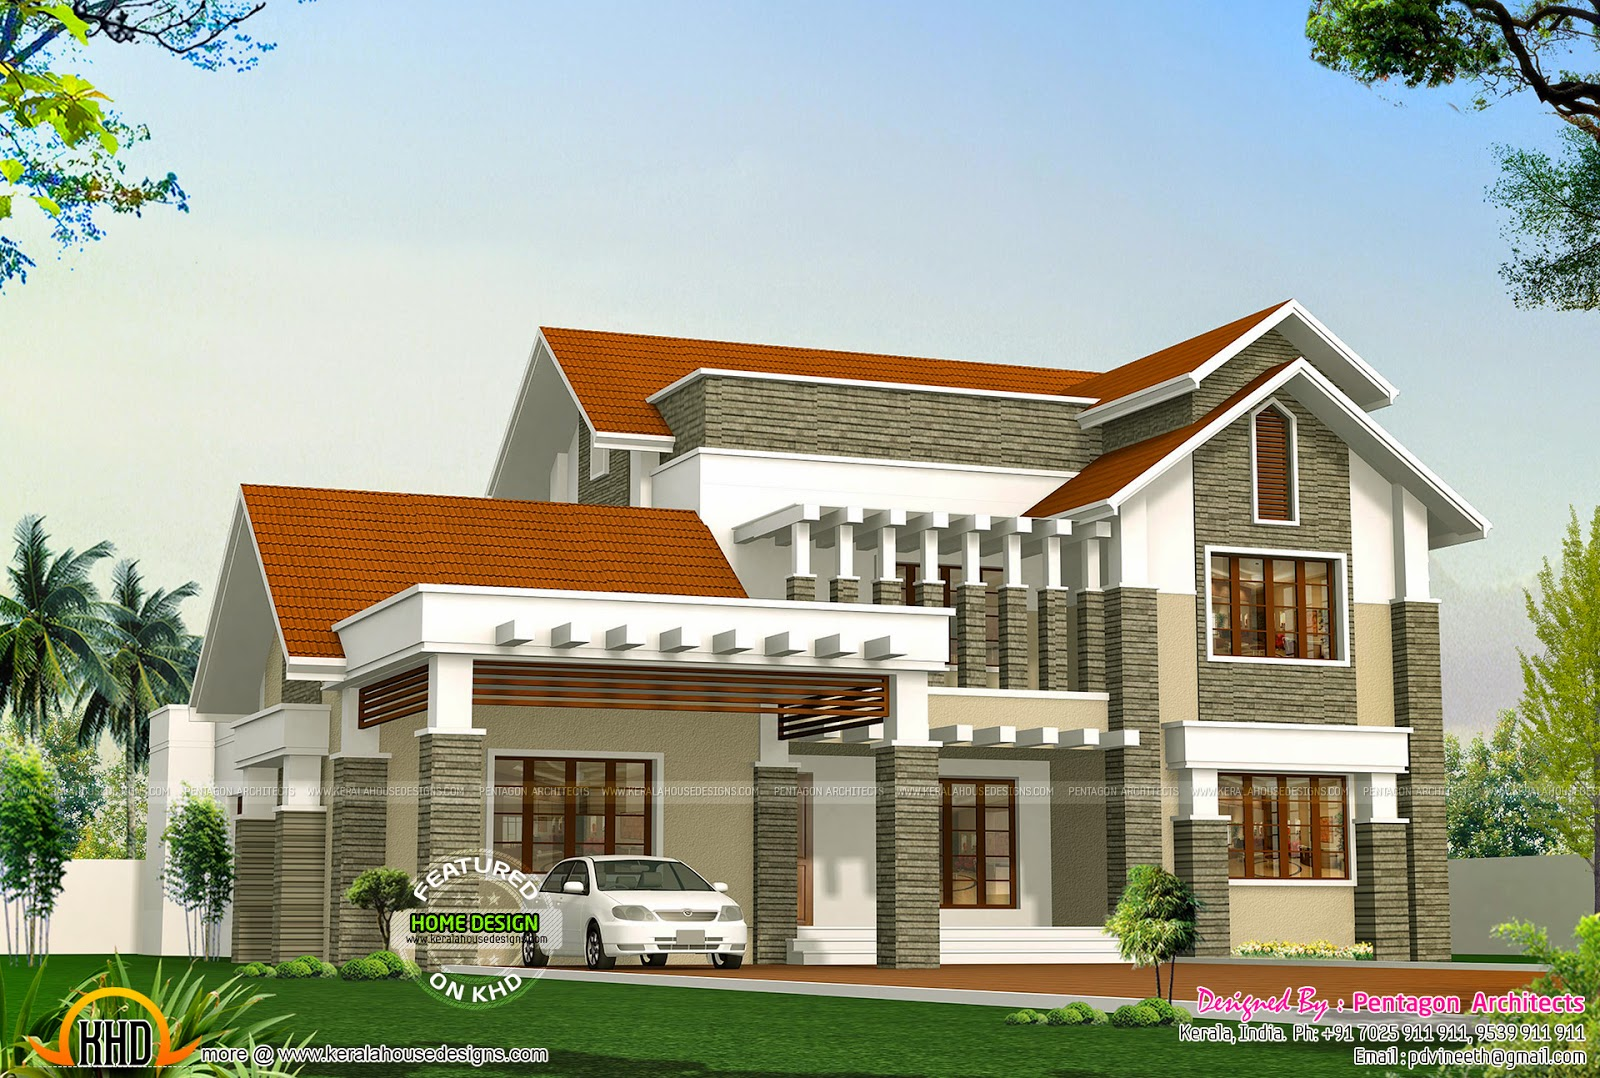 9 Beautiful Kerala Houses By Pentagon Architects Kerala Home Design And Floor Plans